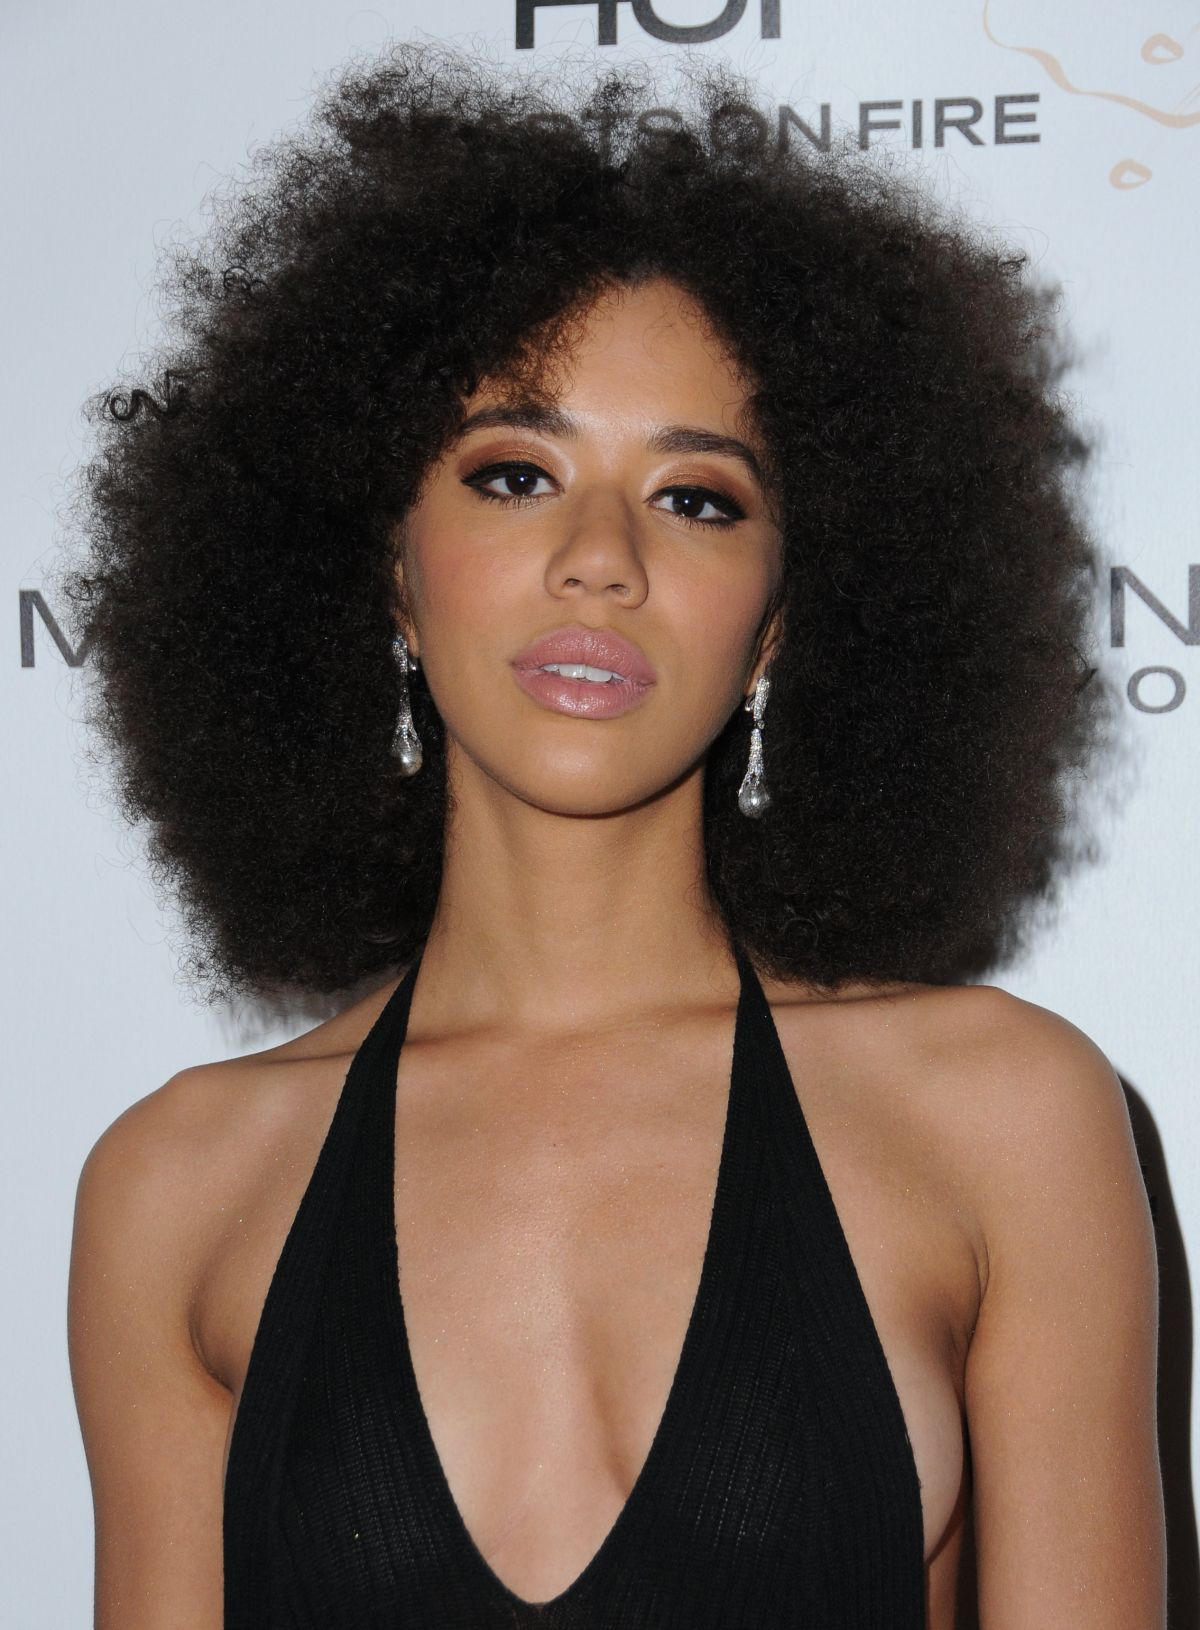 Pics Jasmin Savoy naked (13 foto and video), Tits, Cleavage, Feet, butt 2017